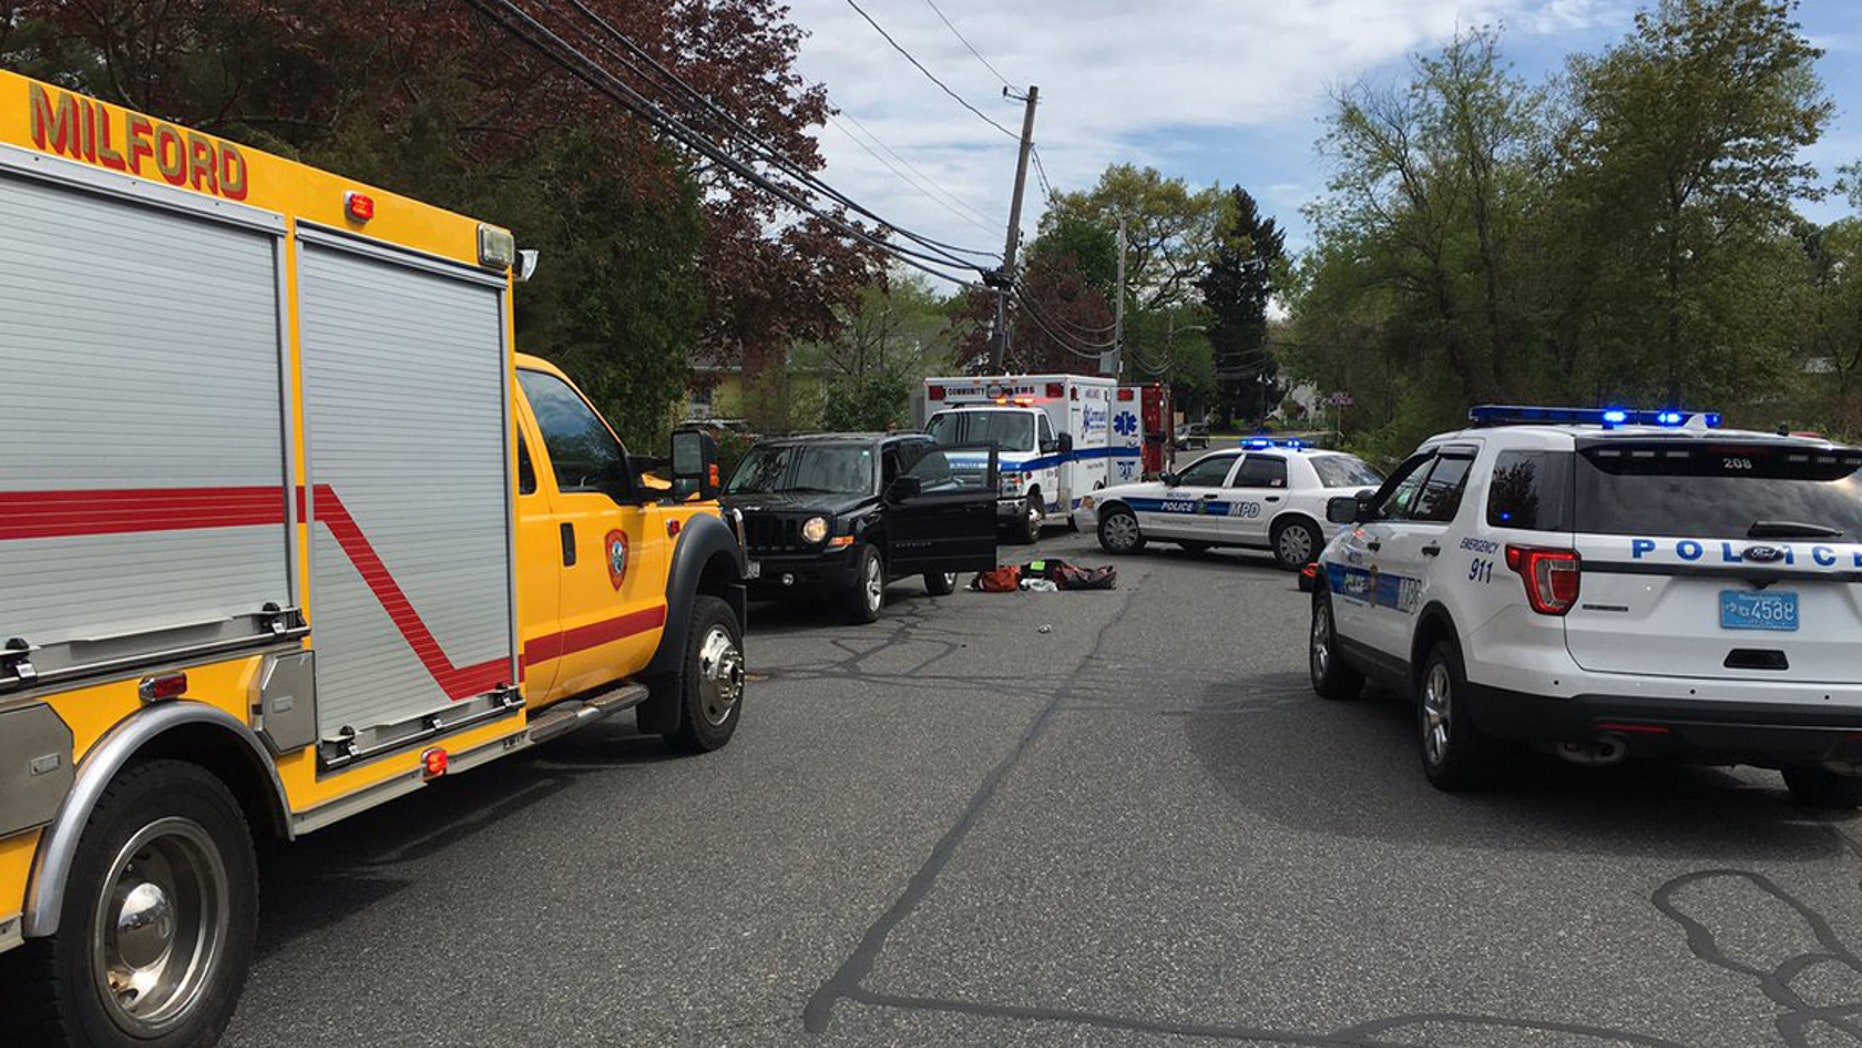 A 19-year-old man is in custody after allegedly stabbing multiple people in Milford Sunday afternoon.